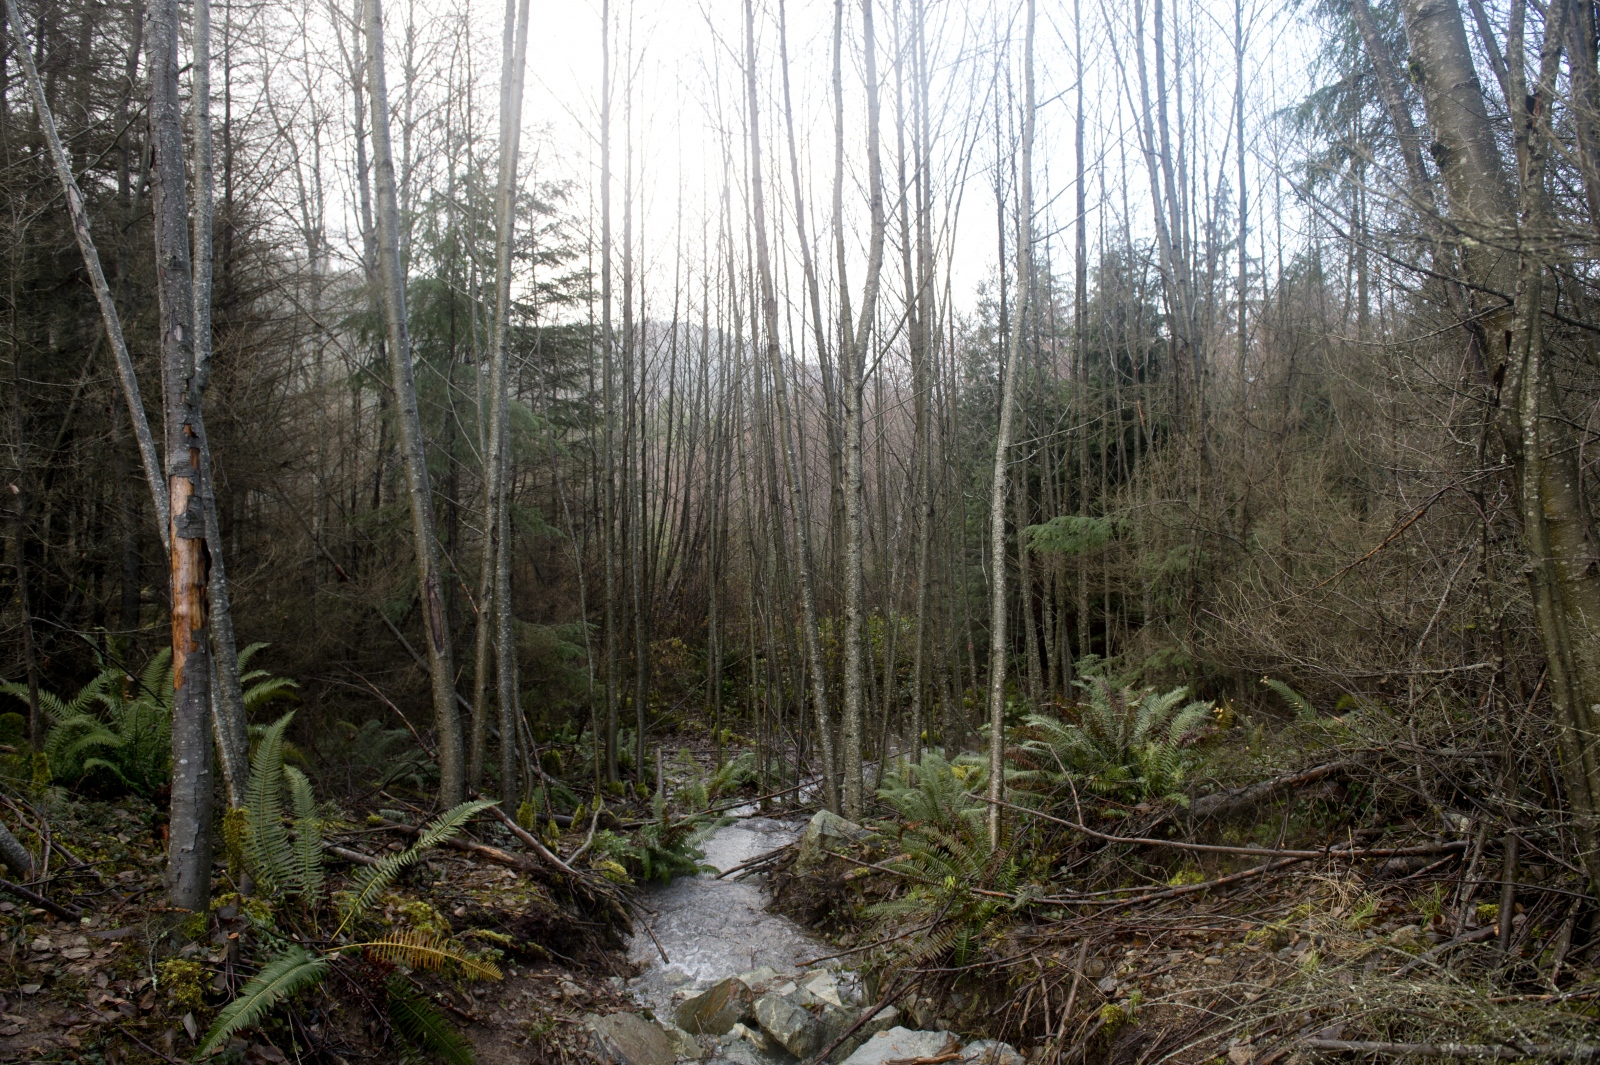 "Water flows from the South Island Resource Management site into an ephemeral stream on the western perimeter of the site on Dec. 9, 2015. The stream flows directly into Cowichan Valley Regional District land. As per the permit, all water — including contact water, or water that has come into contact with contaminants — is to be treated before being discharged into the ephemeral stream. The stream joins Shawnigan Creek, which flows directly into Shawnigan Lake. Residents are concerned water is not being treated properly prior to being discharged in the stream, where a breach occurred on Nov. 13, 2015. The breach led to a ""no water use"" advisory from the Vancouver Island Health Authority, affecting residents on the southern end of Shawnigan Lake."